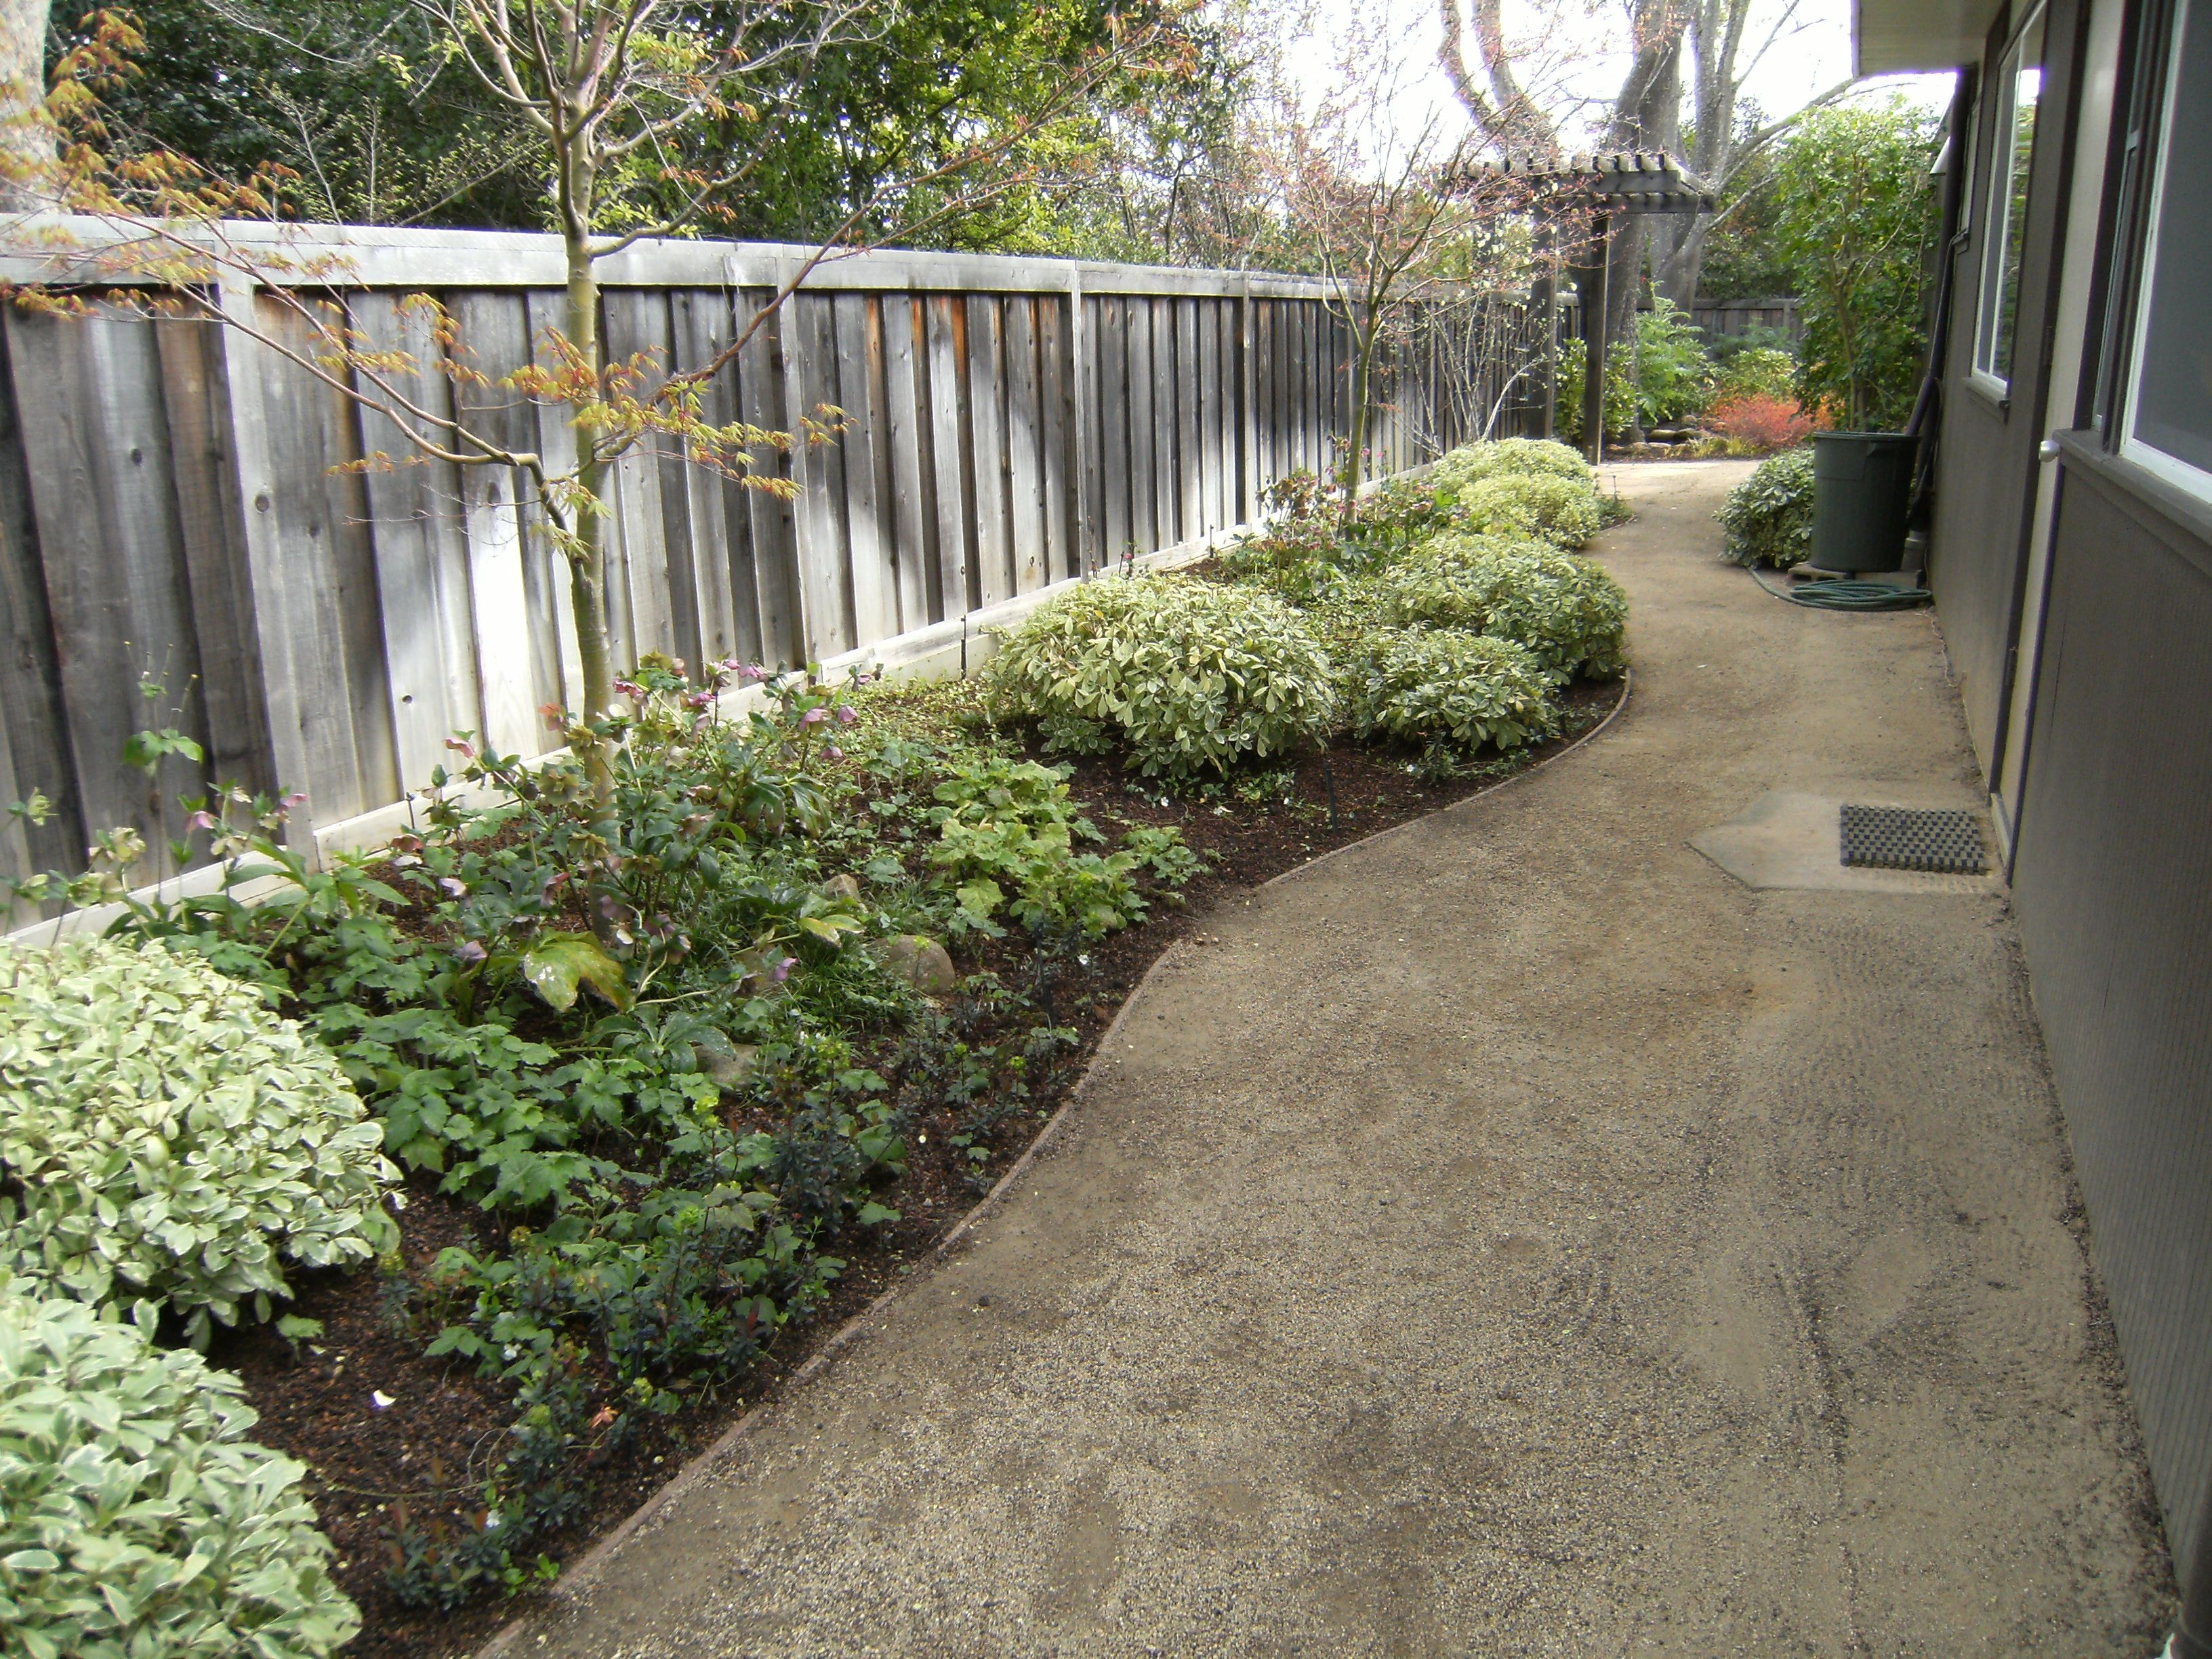 Decomposed Granite Paths (With images)   Decomposed ... on Decomposed Granite Backyard Ideas id=25942